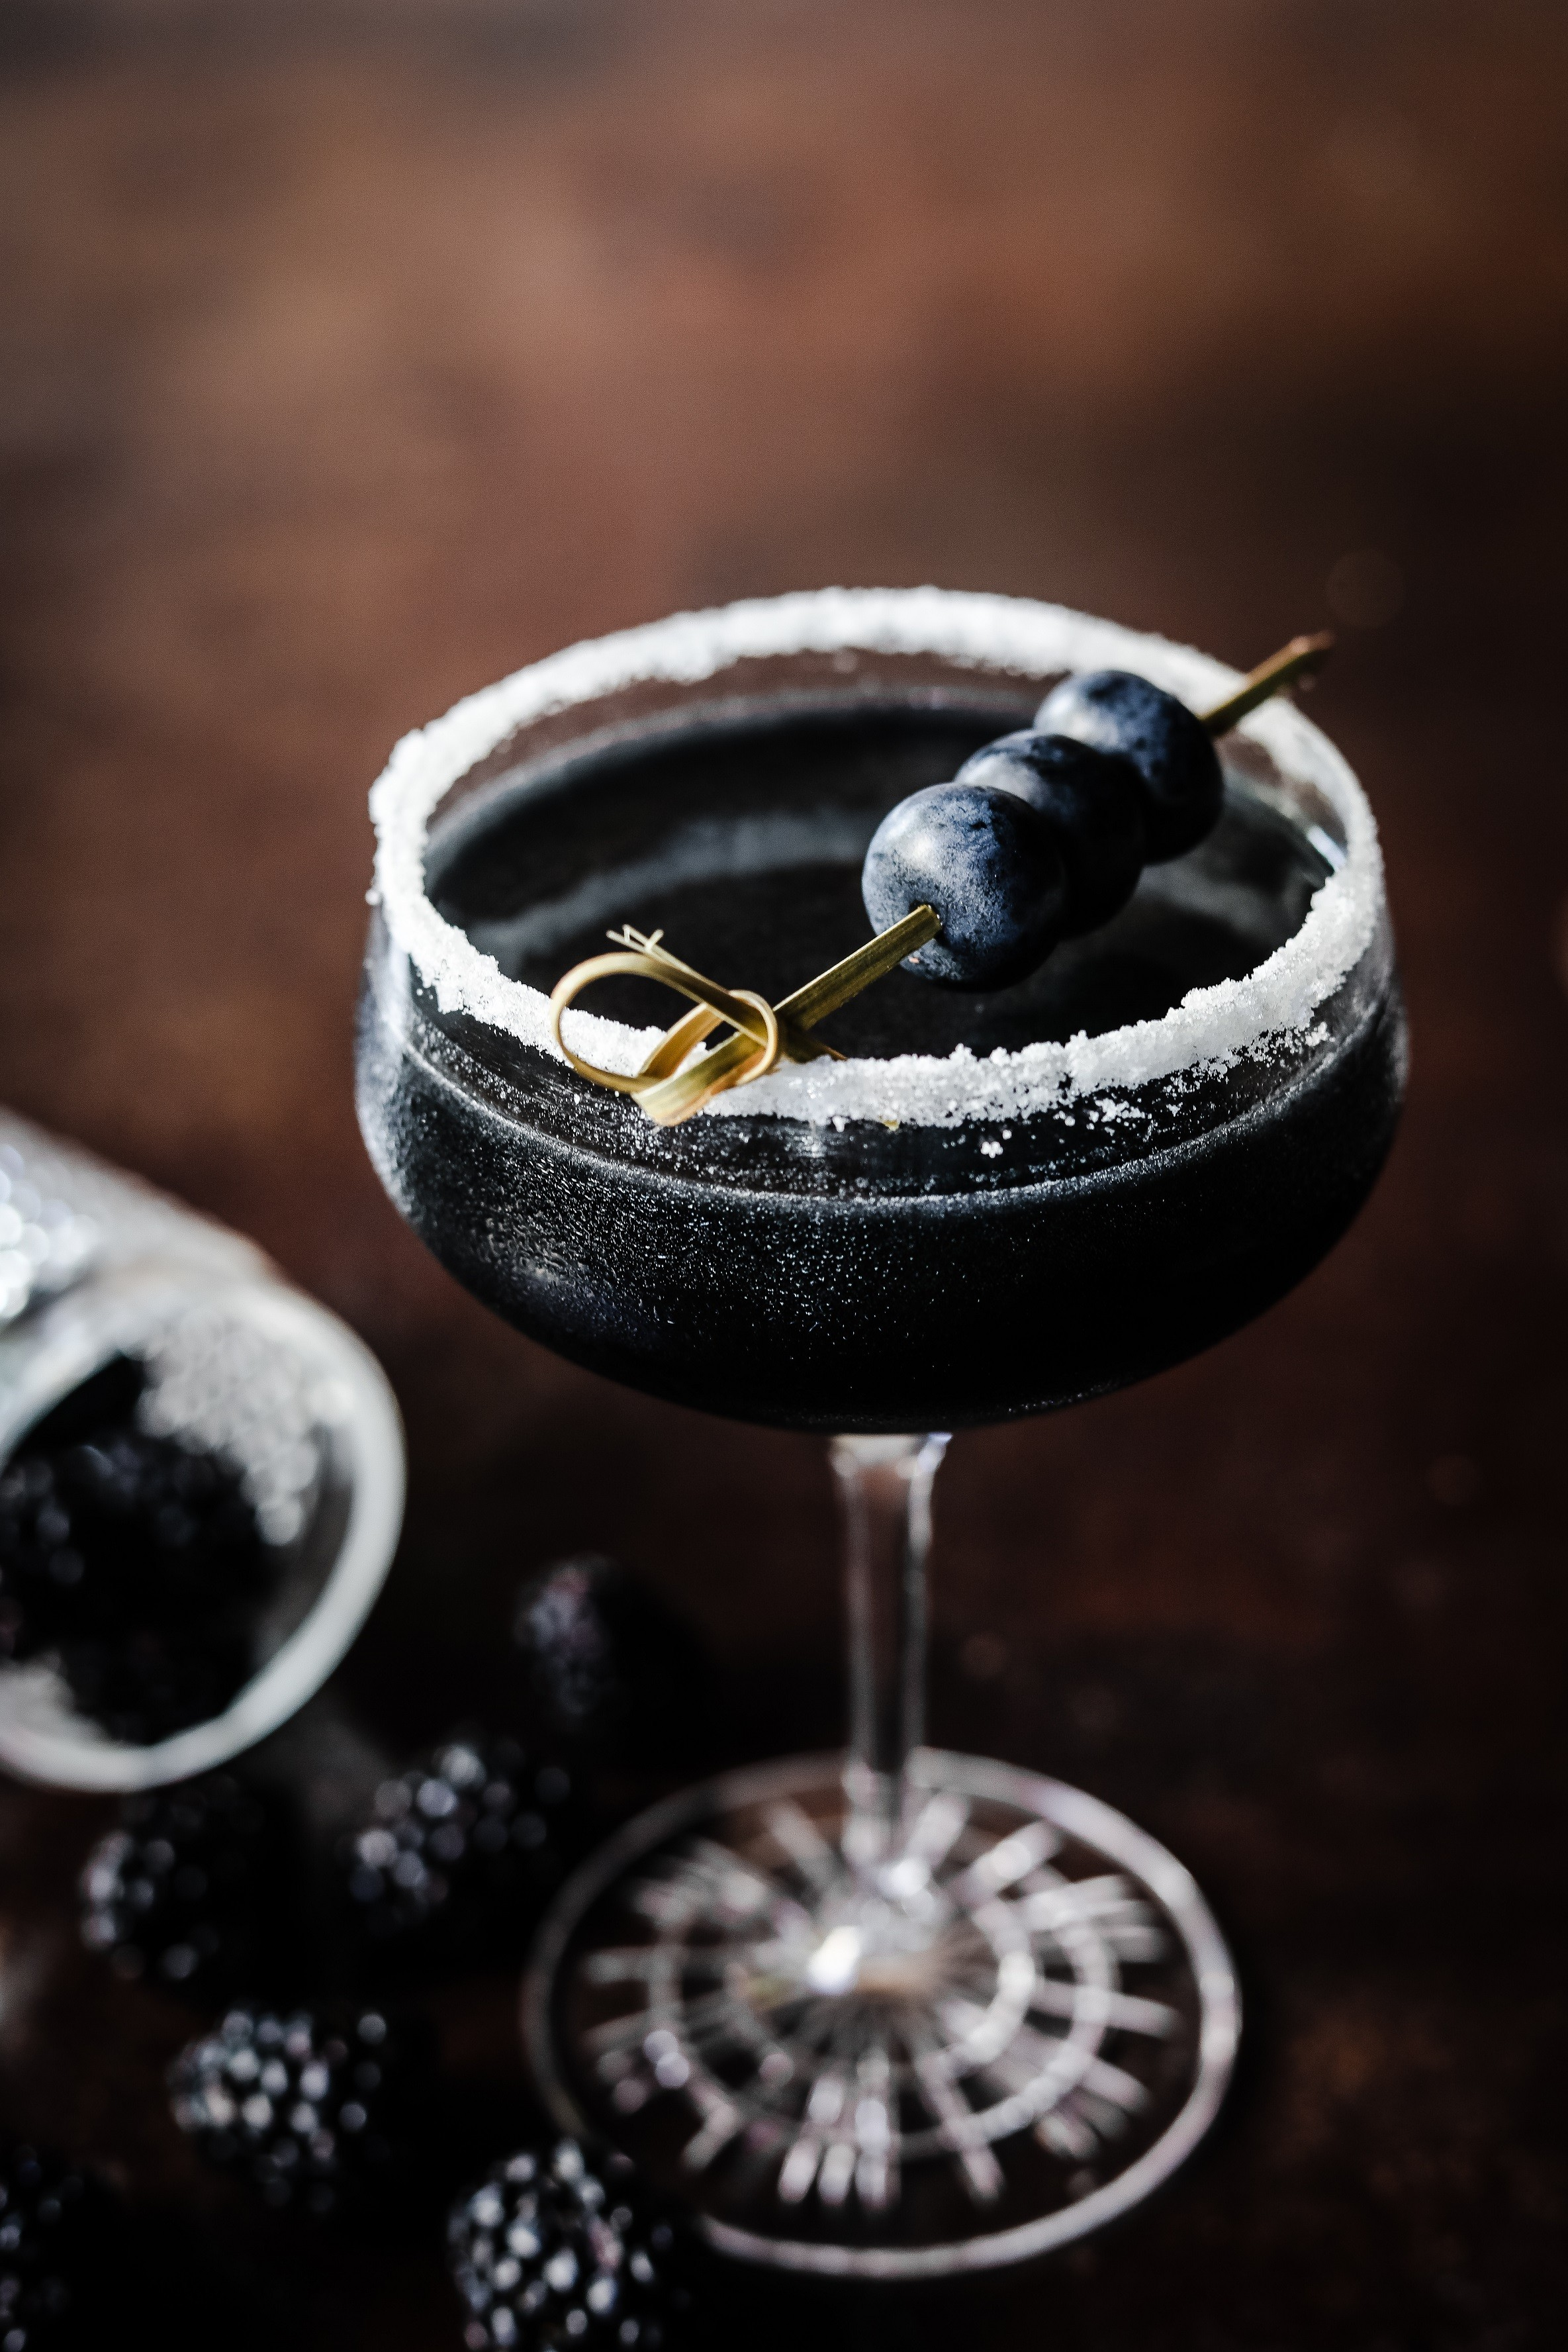 O Black Daiquiri (Foto: Julia Guedes)